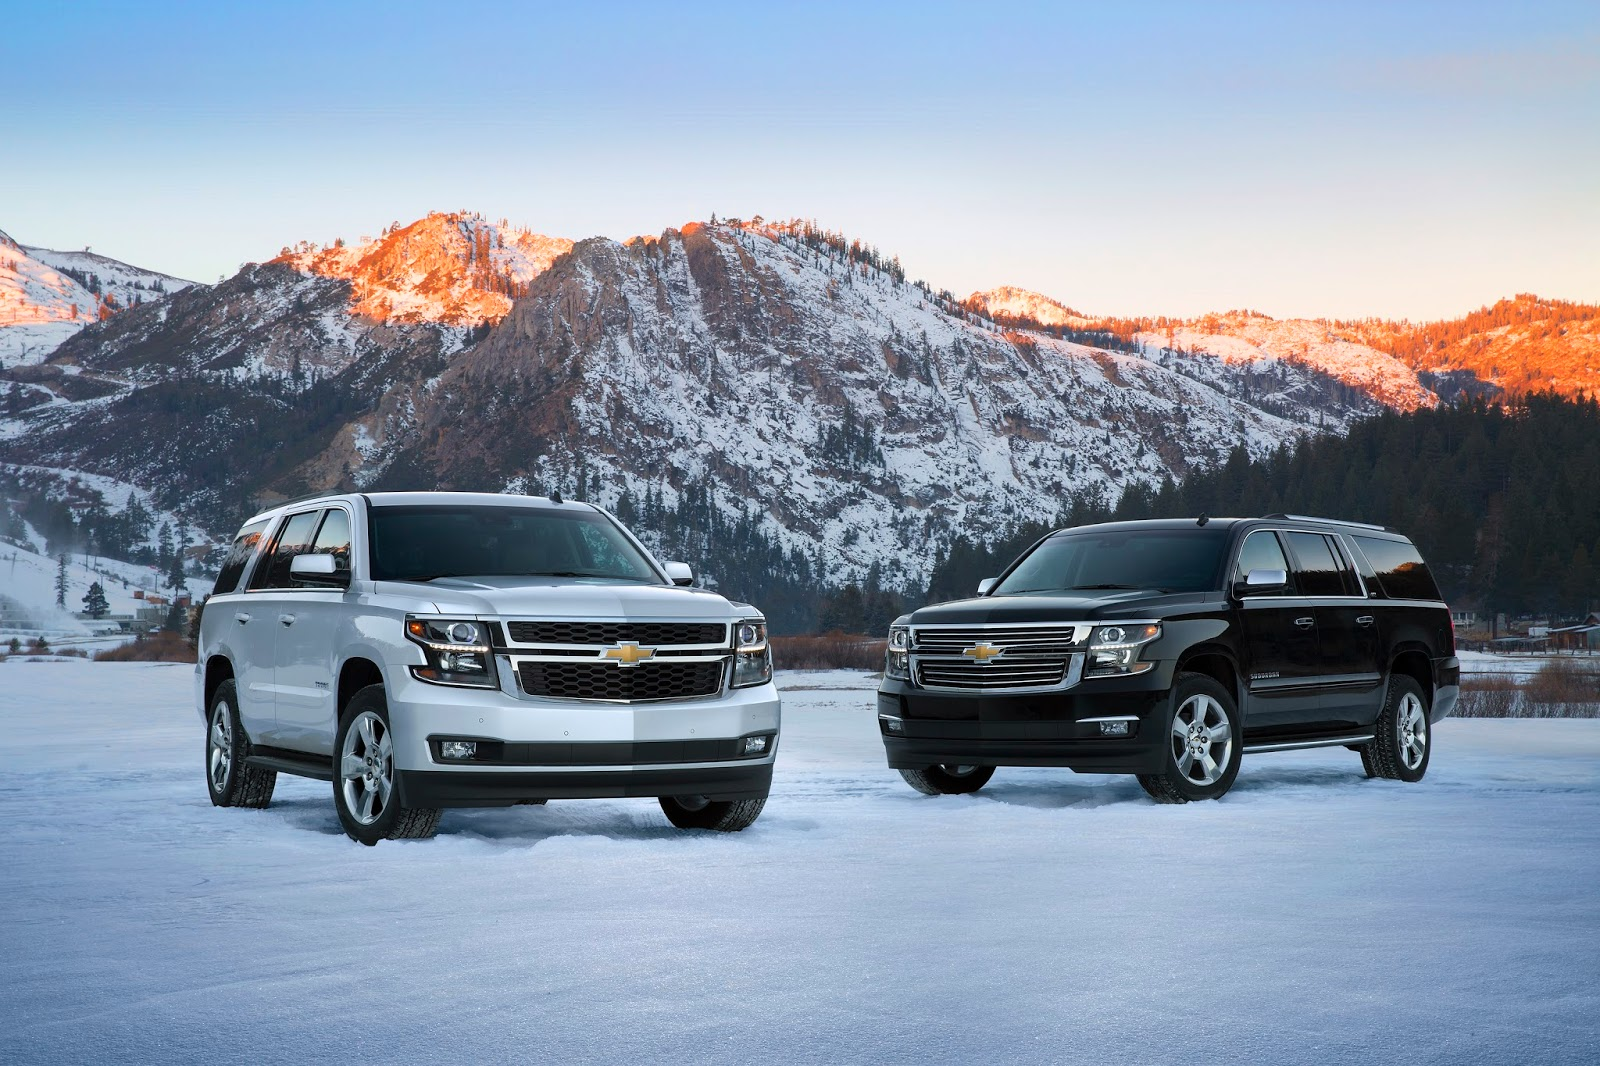 2015 Chevy SUVs Achieve Better Gas Mileage